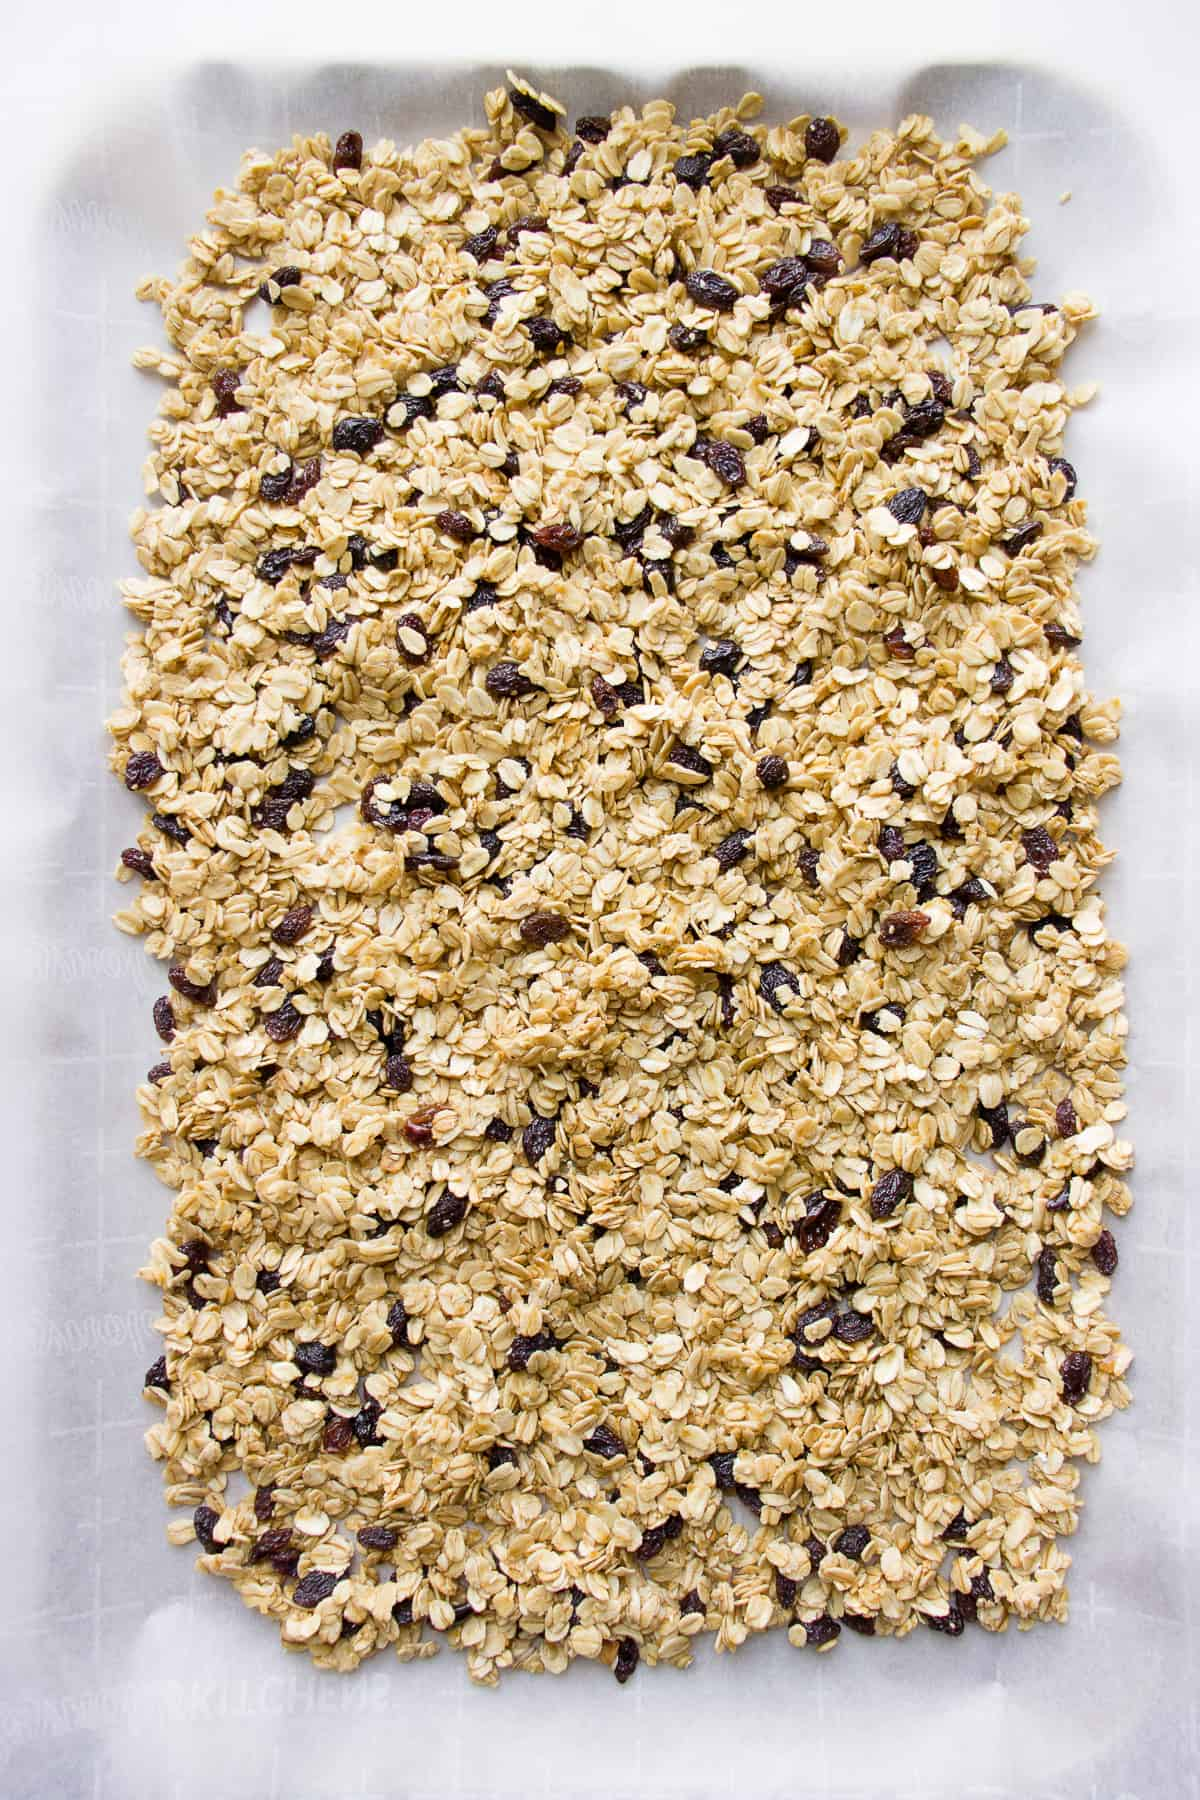 Simple granola recipe spread out on a baking tray